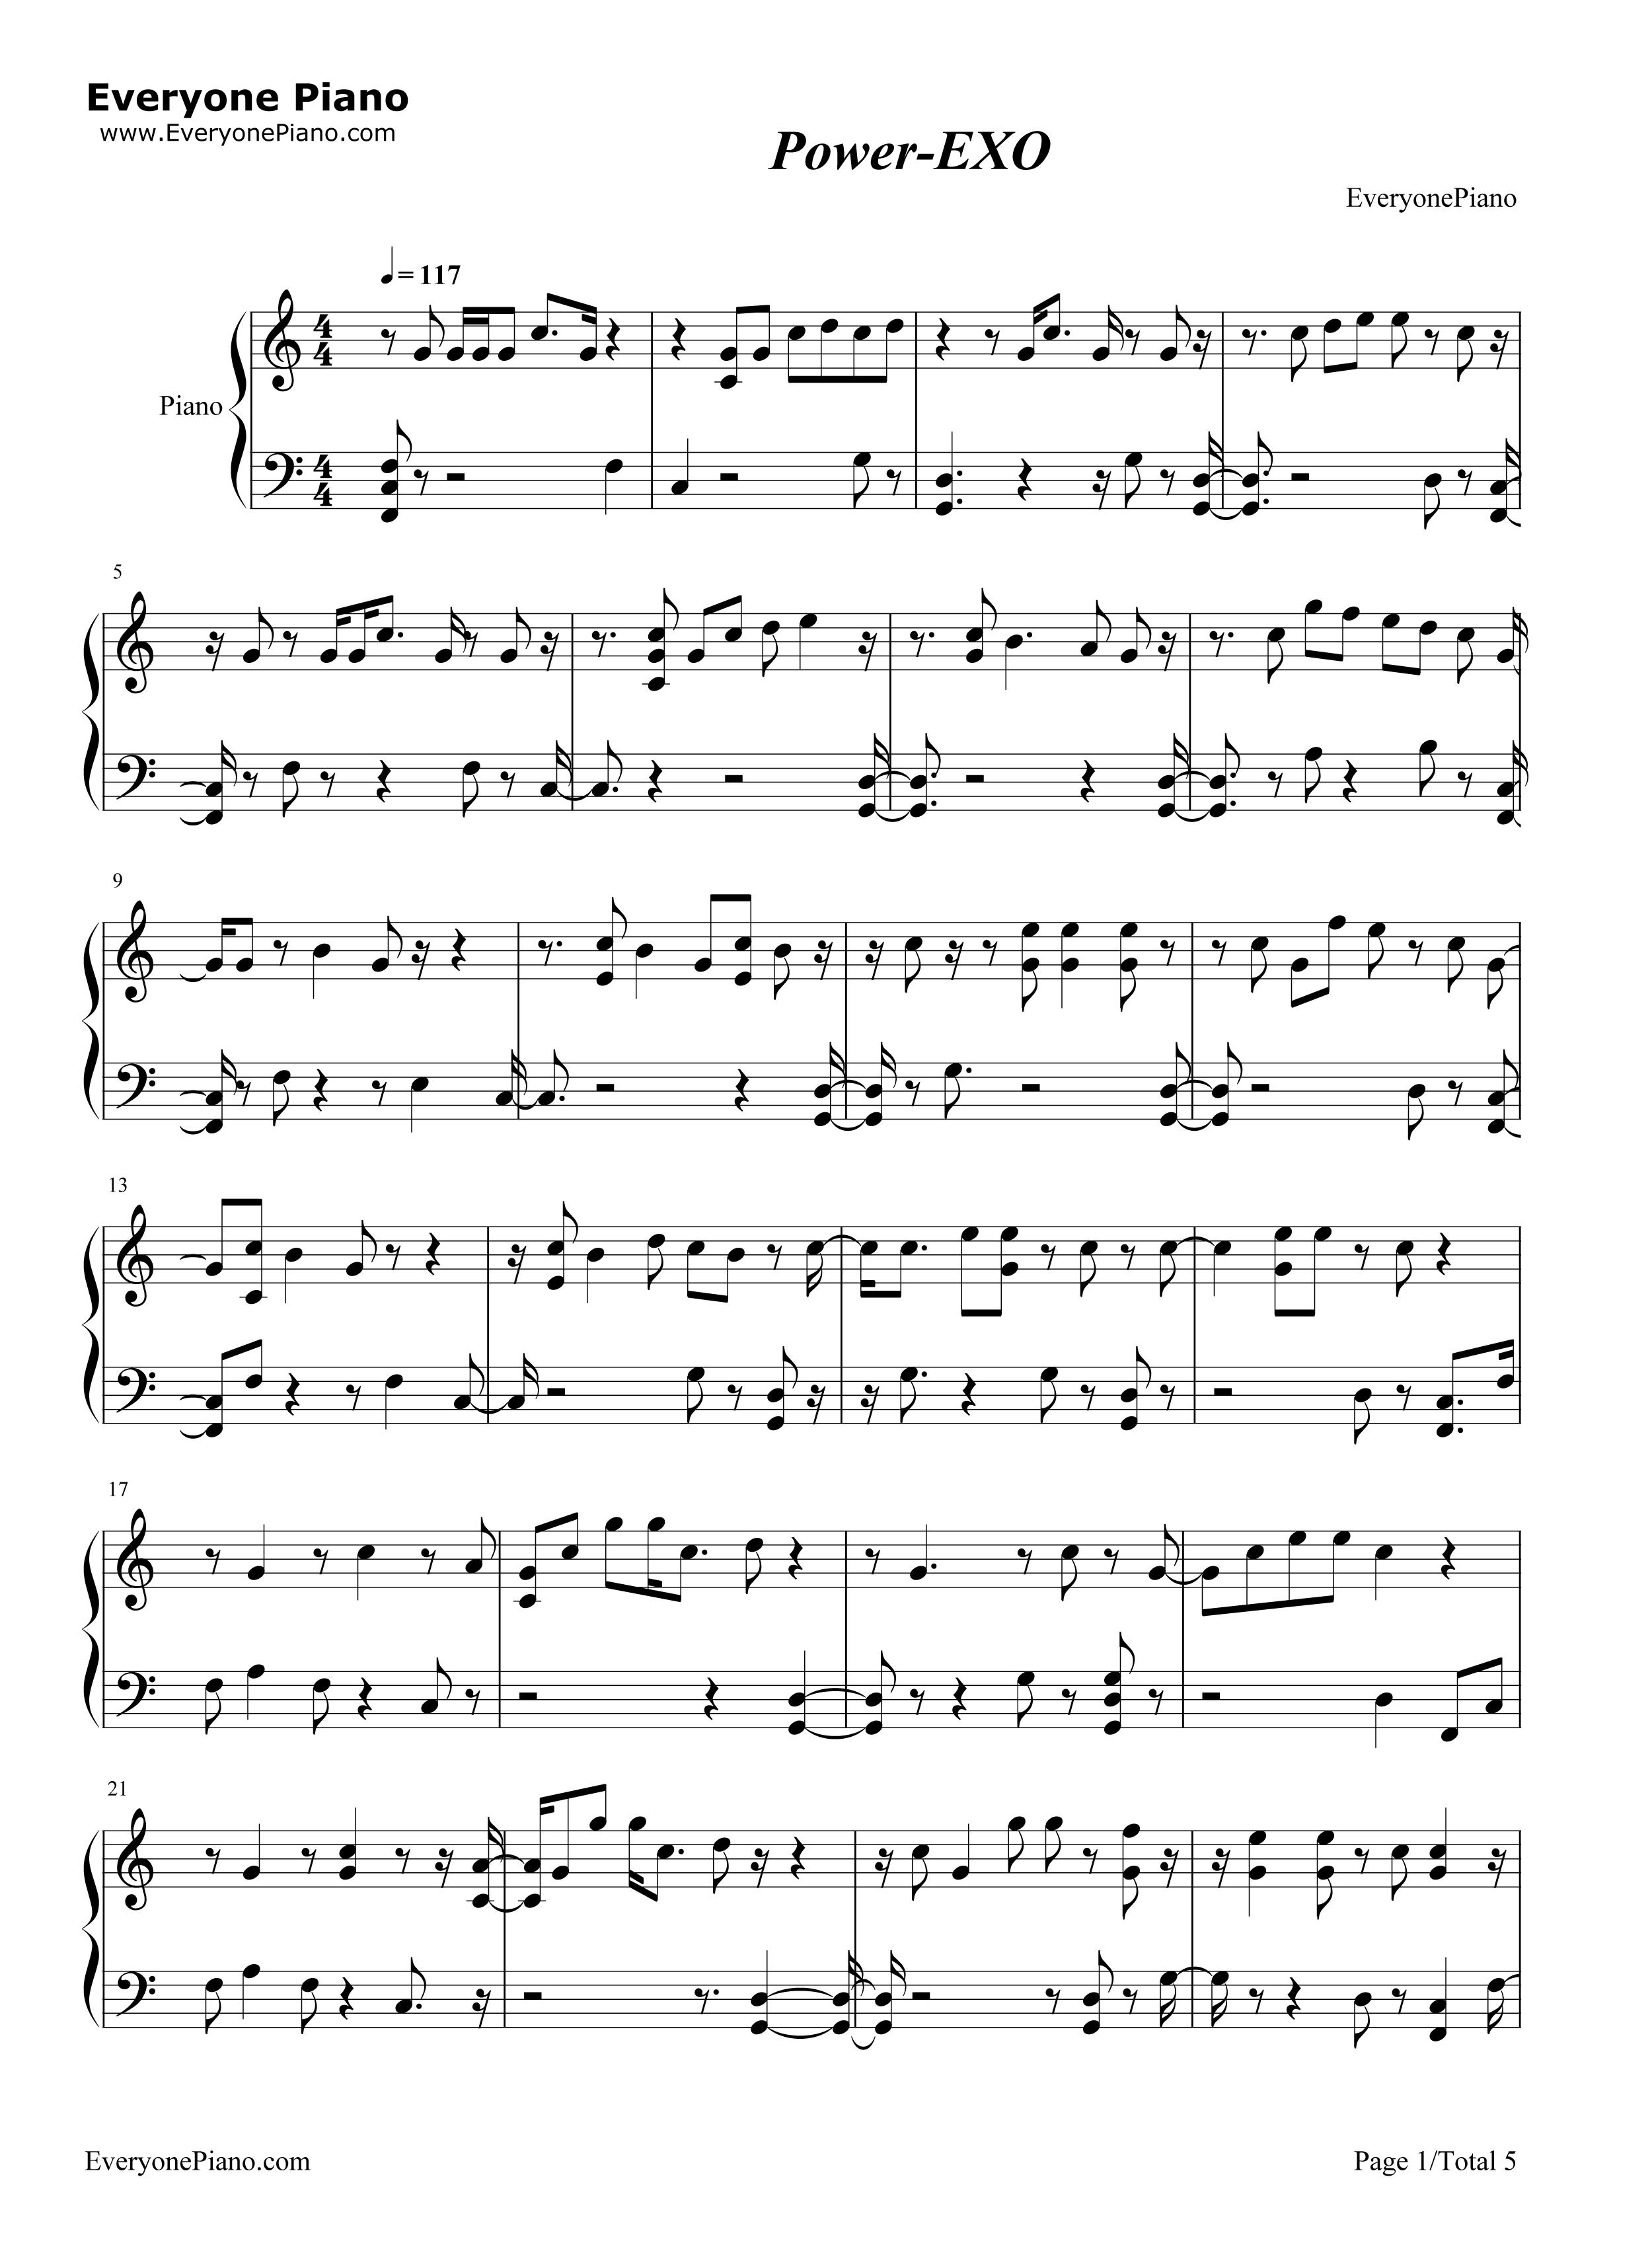 Power exo stave preview 1 free piano sheet music piano chords listen now print sheet power exo stave preview 1 hexwebz Gallery